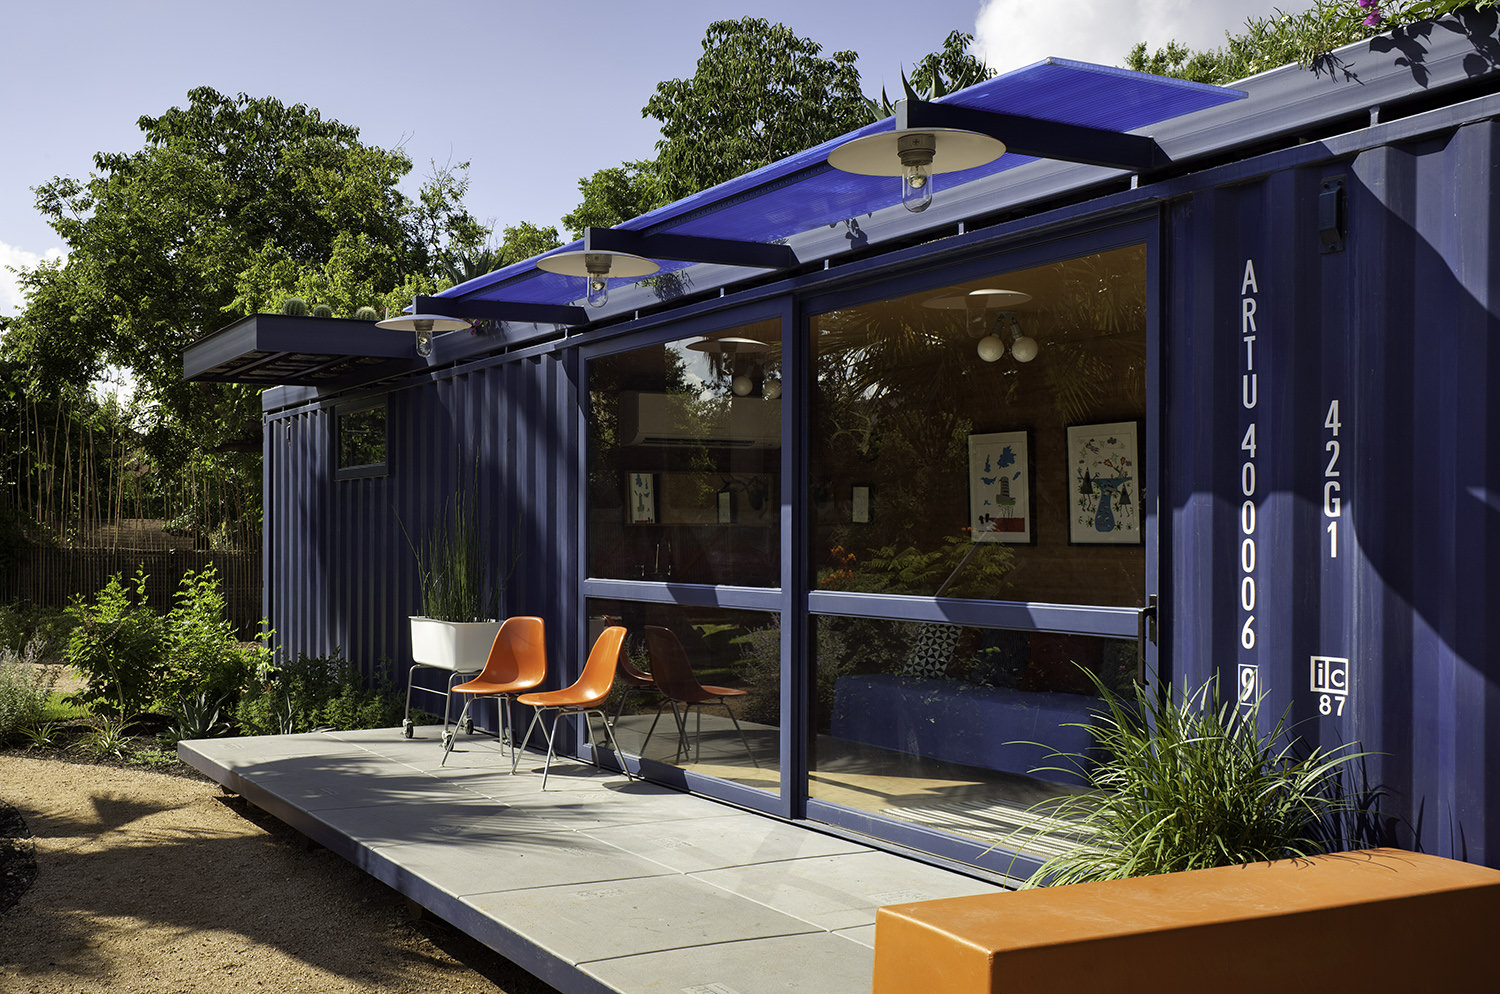 container-guest-house-14.jpg